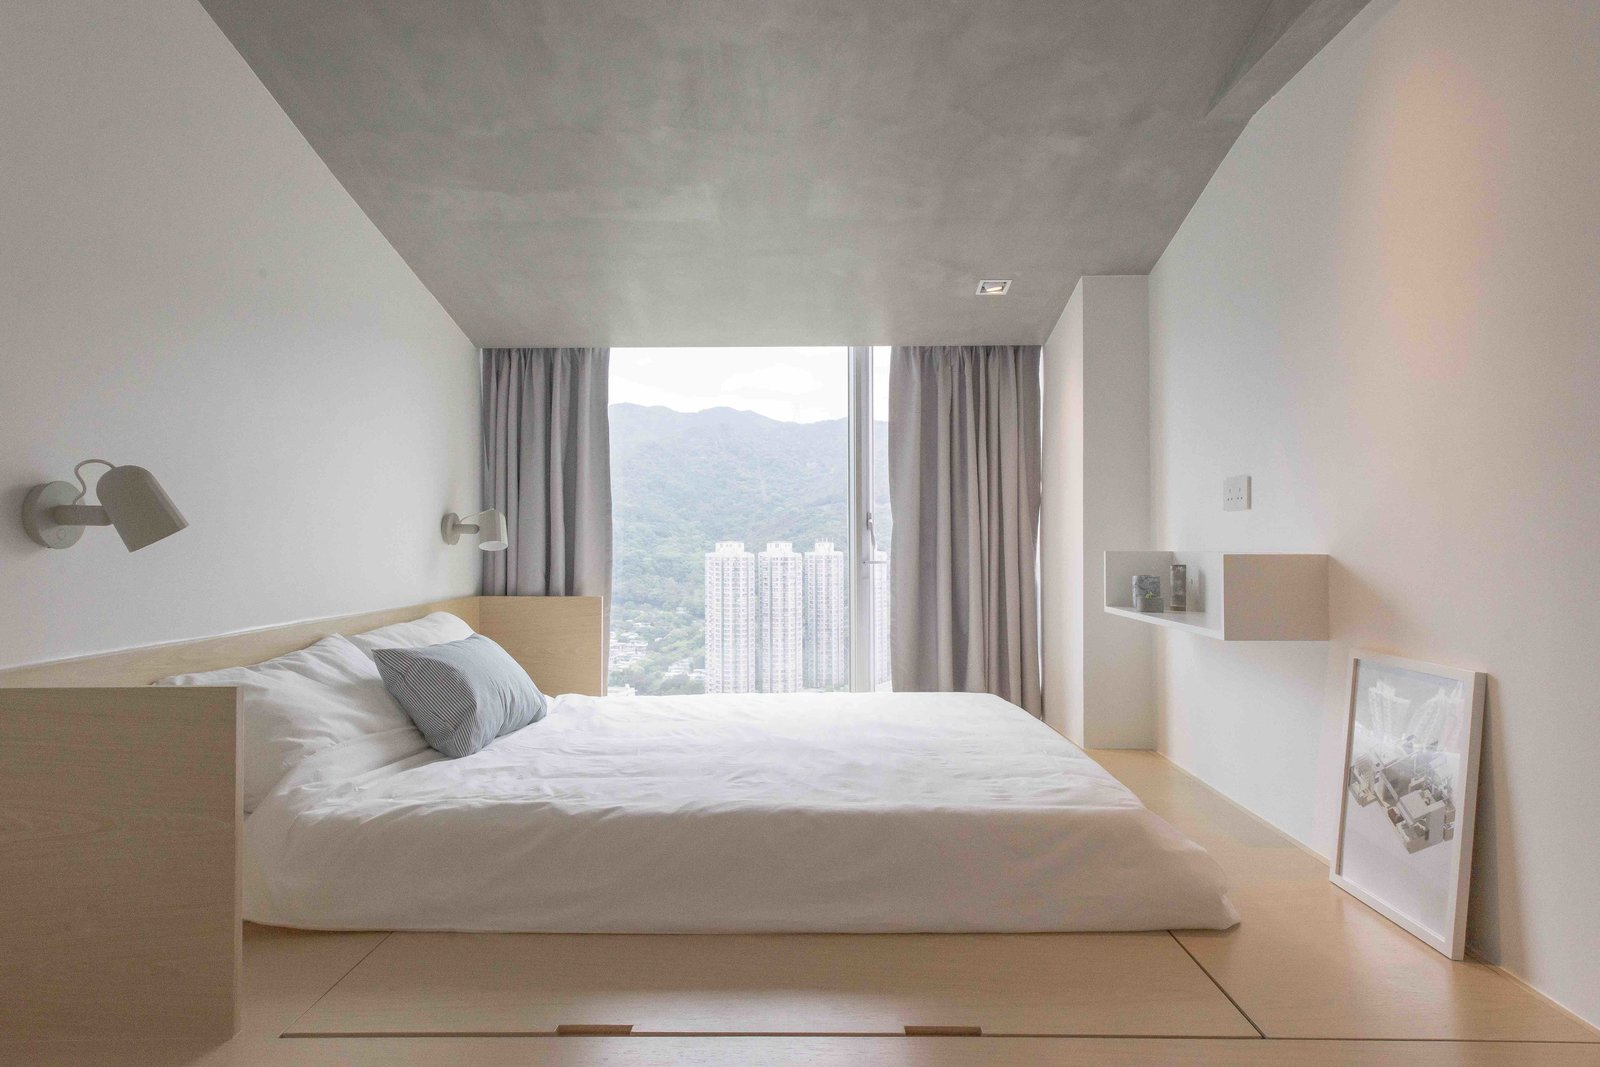 Bedroom, Bed, Shelves, Wall, Storage, Light Hardwood, Ceiling, and Recessed In an apartment in Hong Kong, the bedroom sits on a raised floor that contains storage beneath. The Japanese-inspired cabinetry keeps the bedroom feeling fuss-free and simple, but the storage spaces are still accessible without needing to lift up the bed.  Bedroom Wall Bed Photos from 5 Design Tips for a Better Night's Sleep